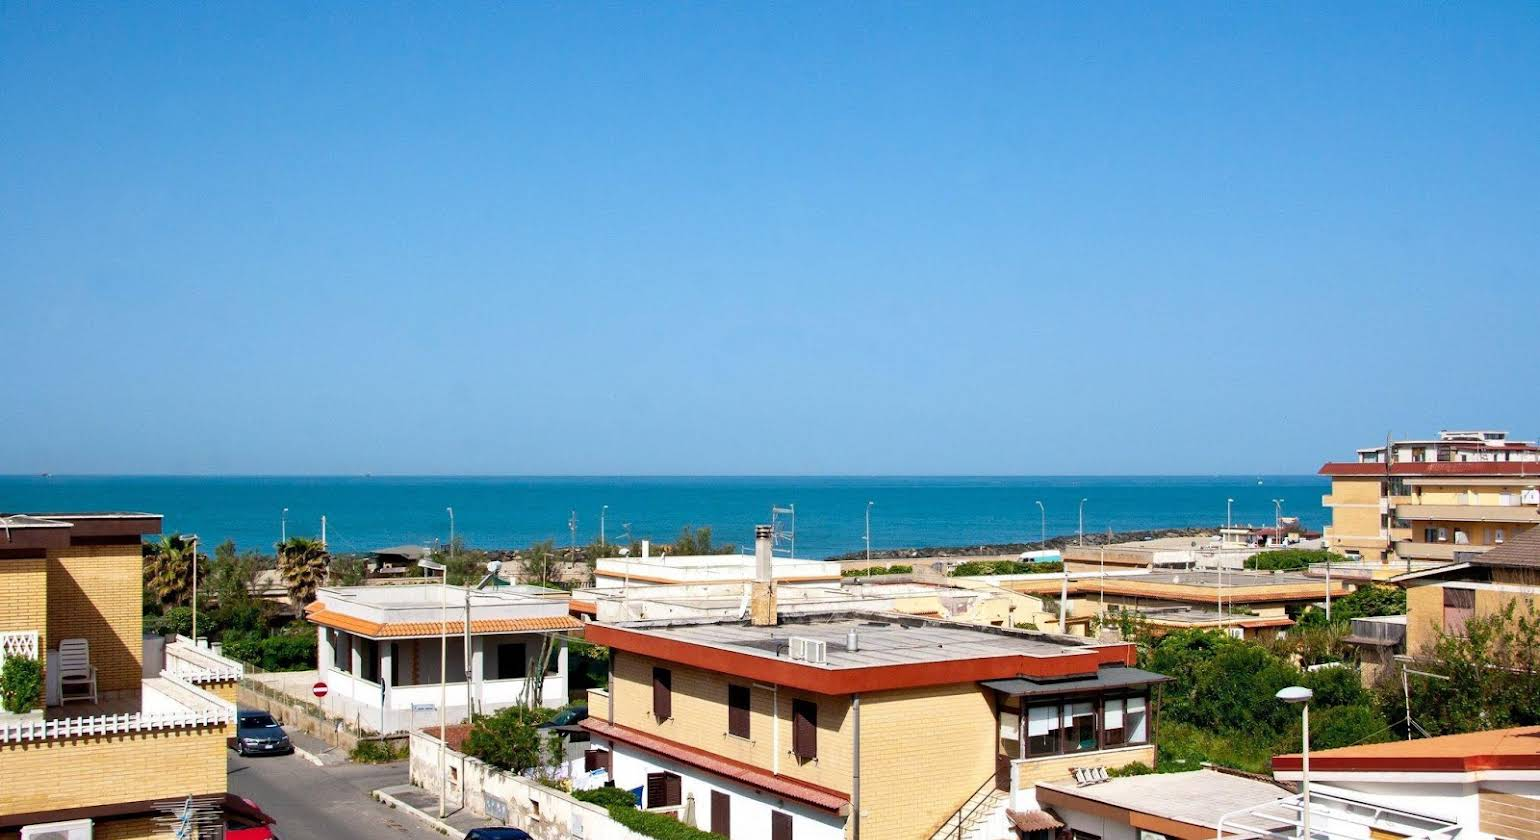 Hotel Riviera, Sure Hotel Collection by Best Western